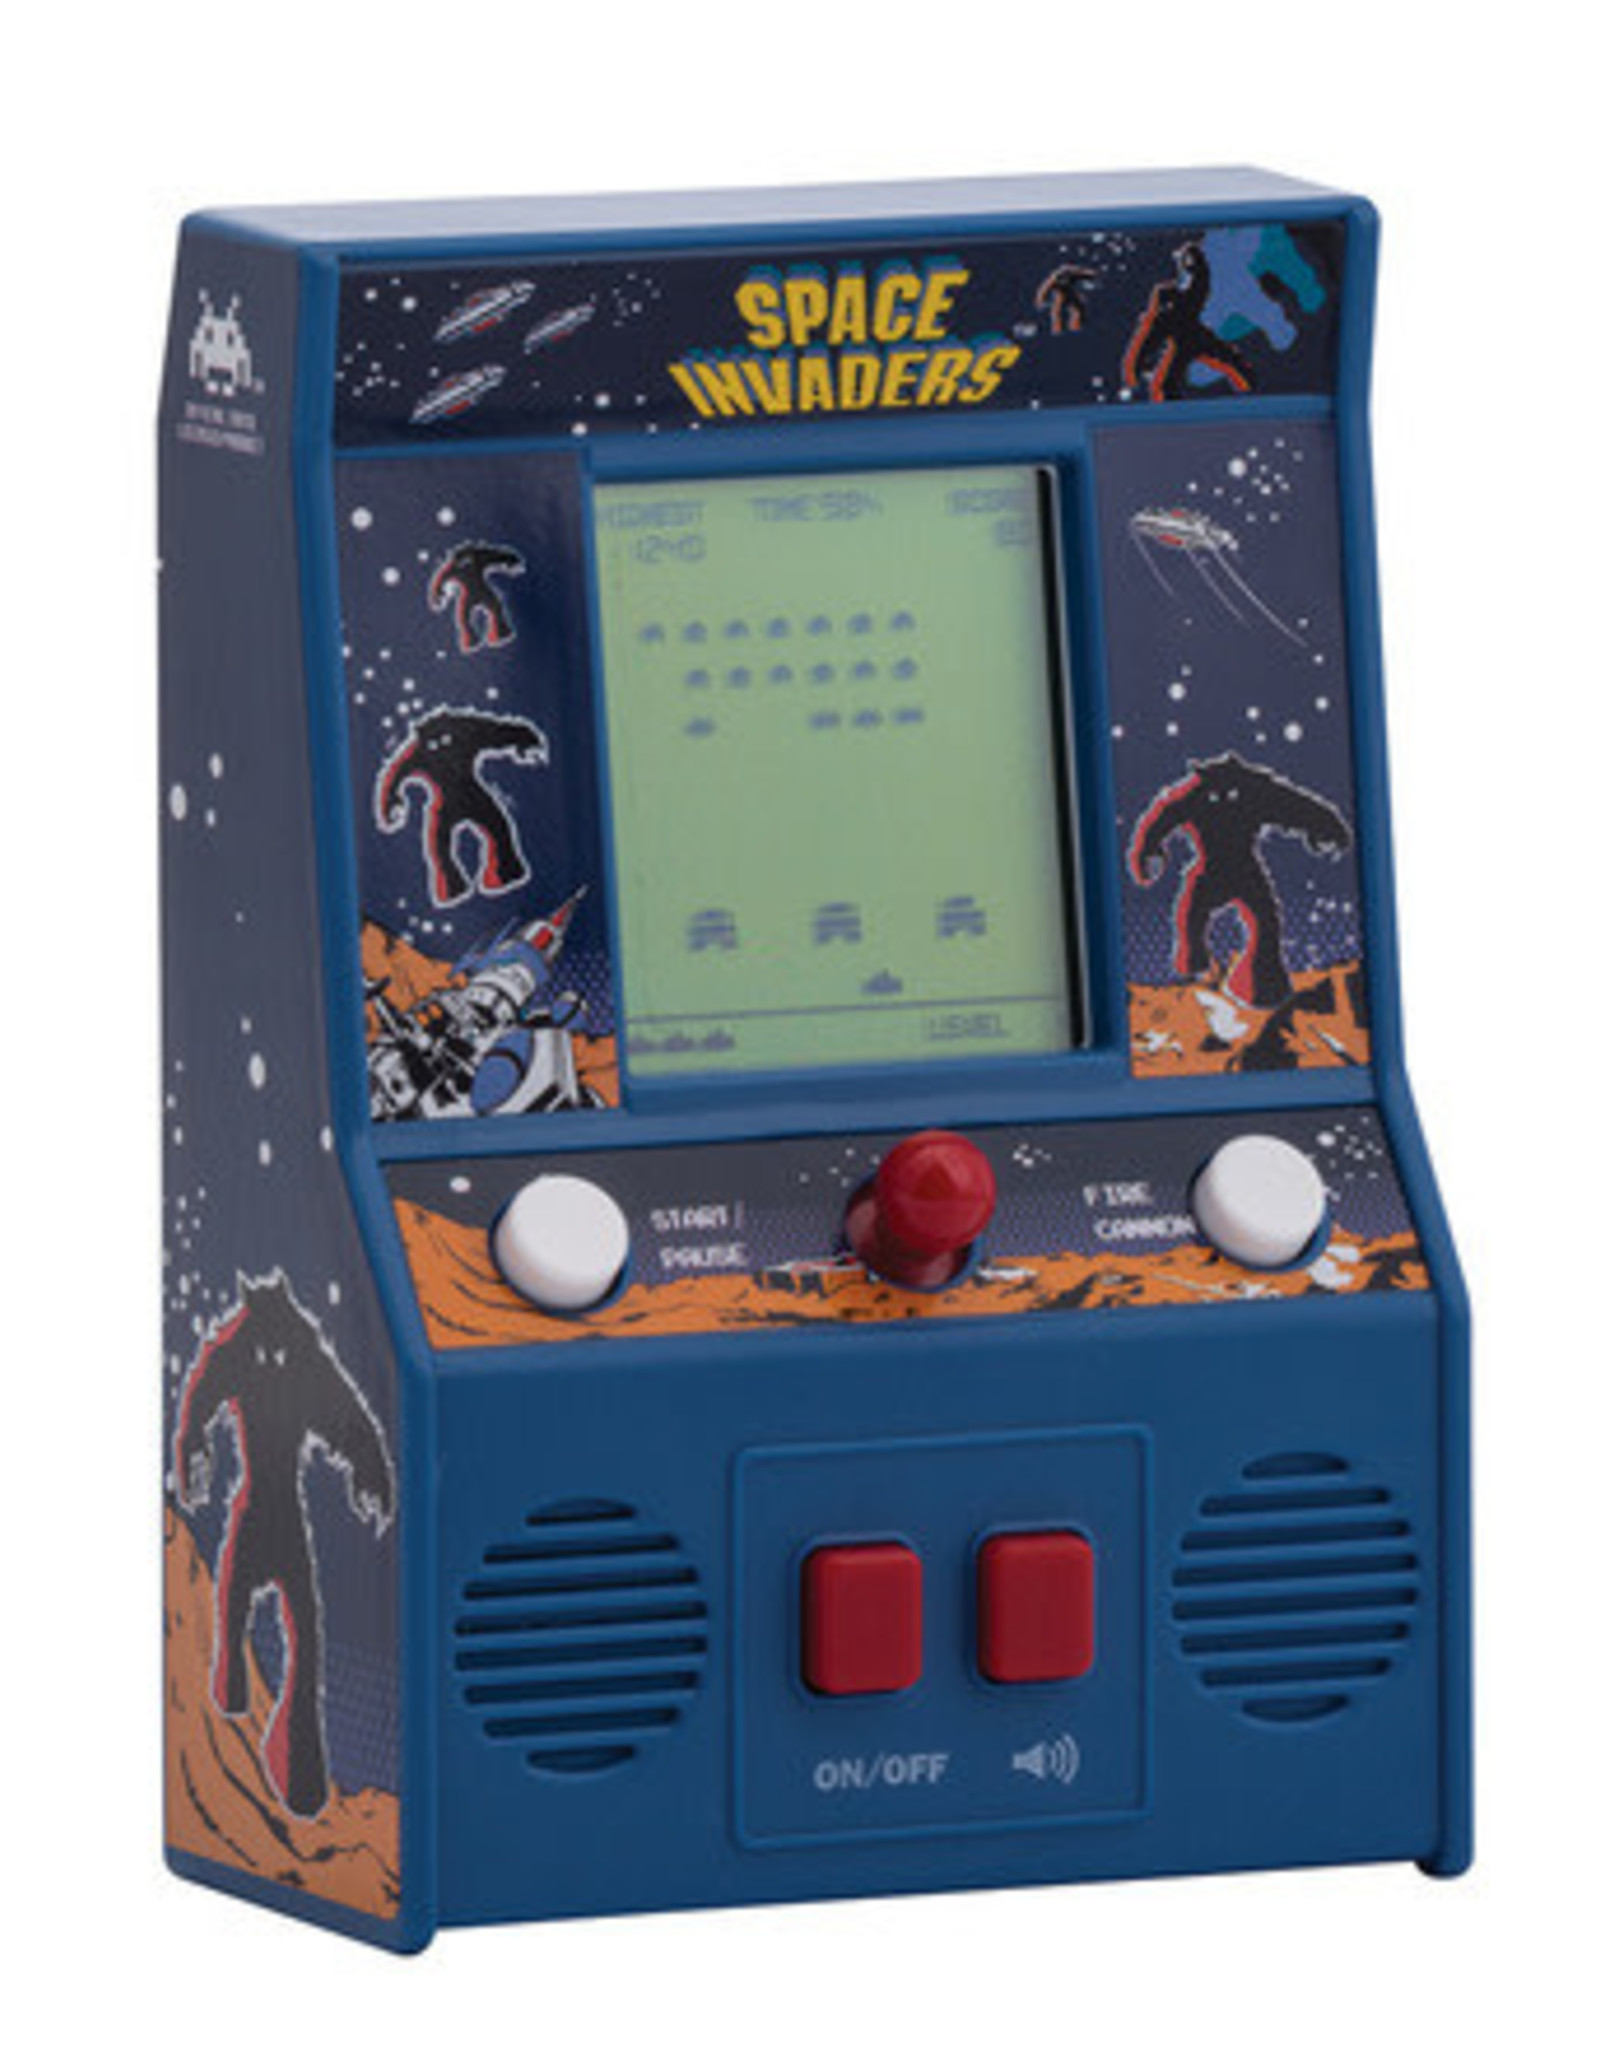 Schylling space invaders mini arcade game